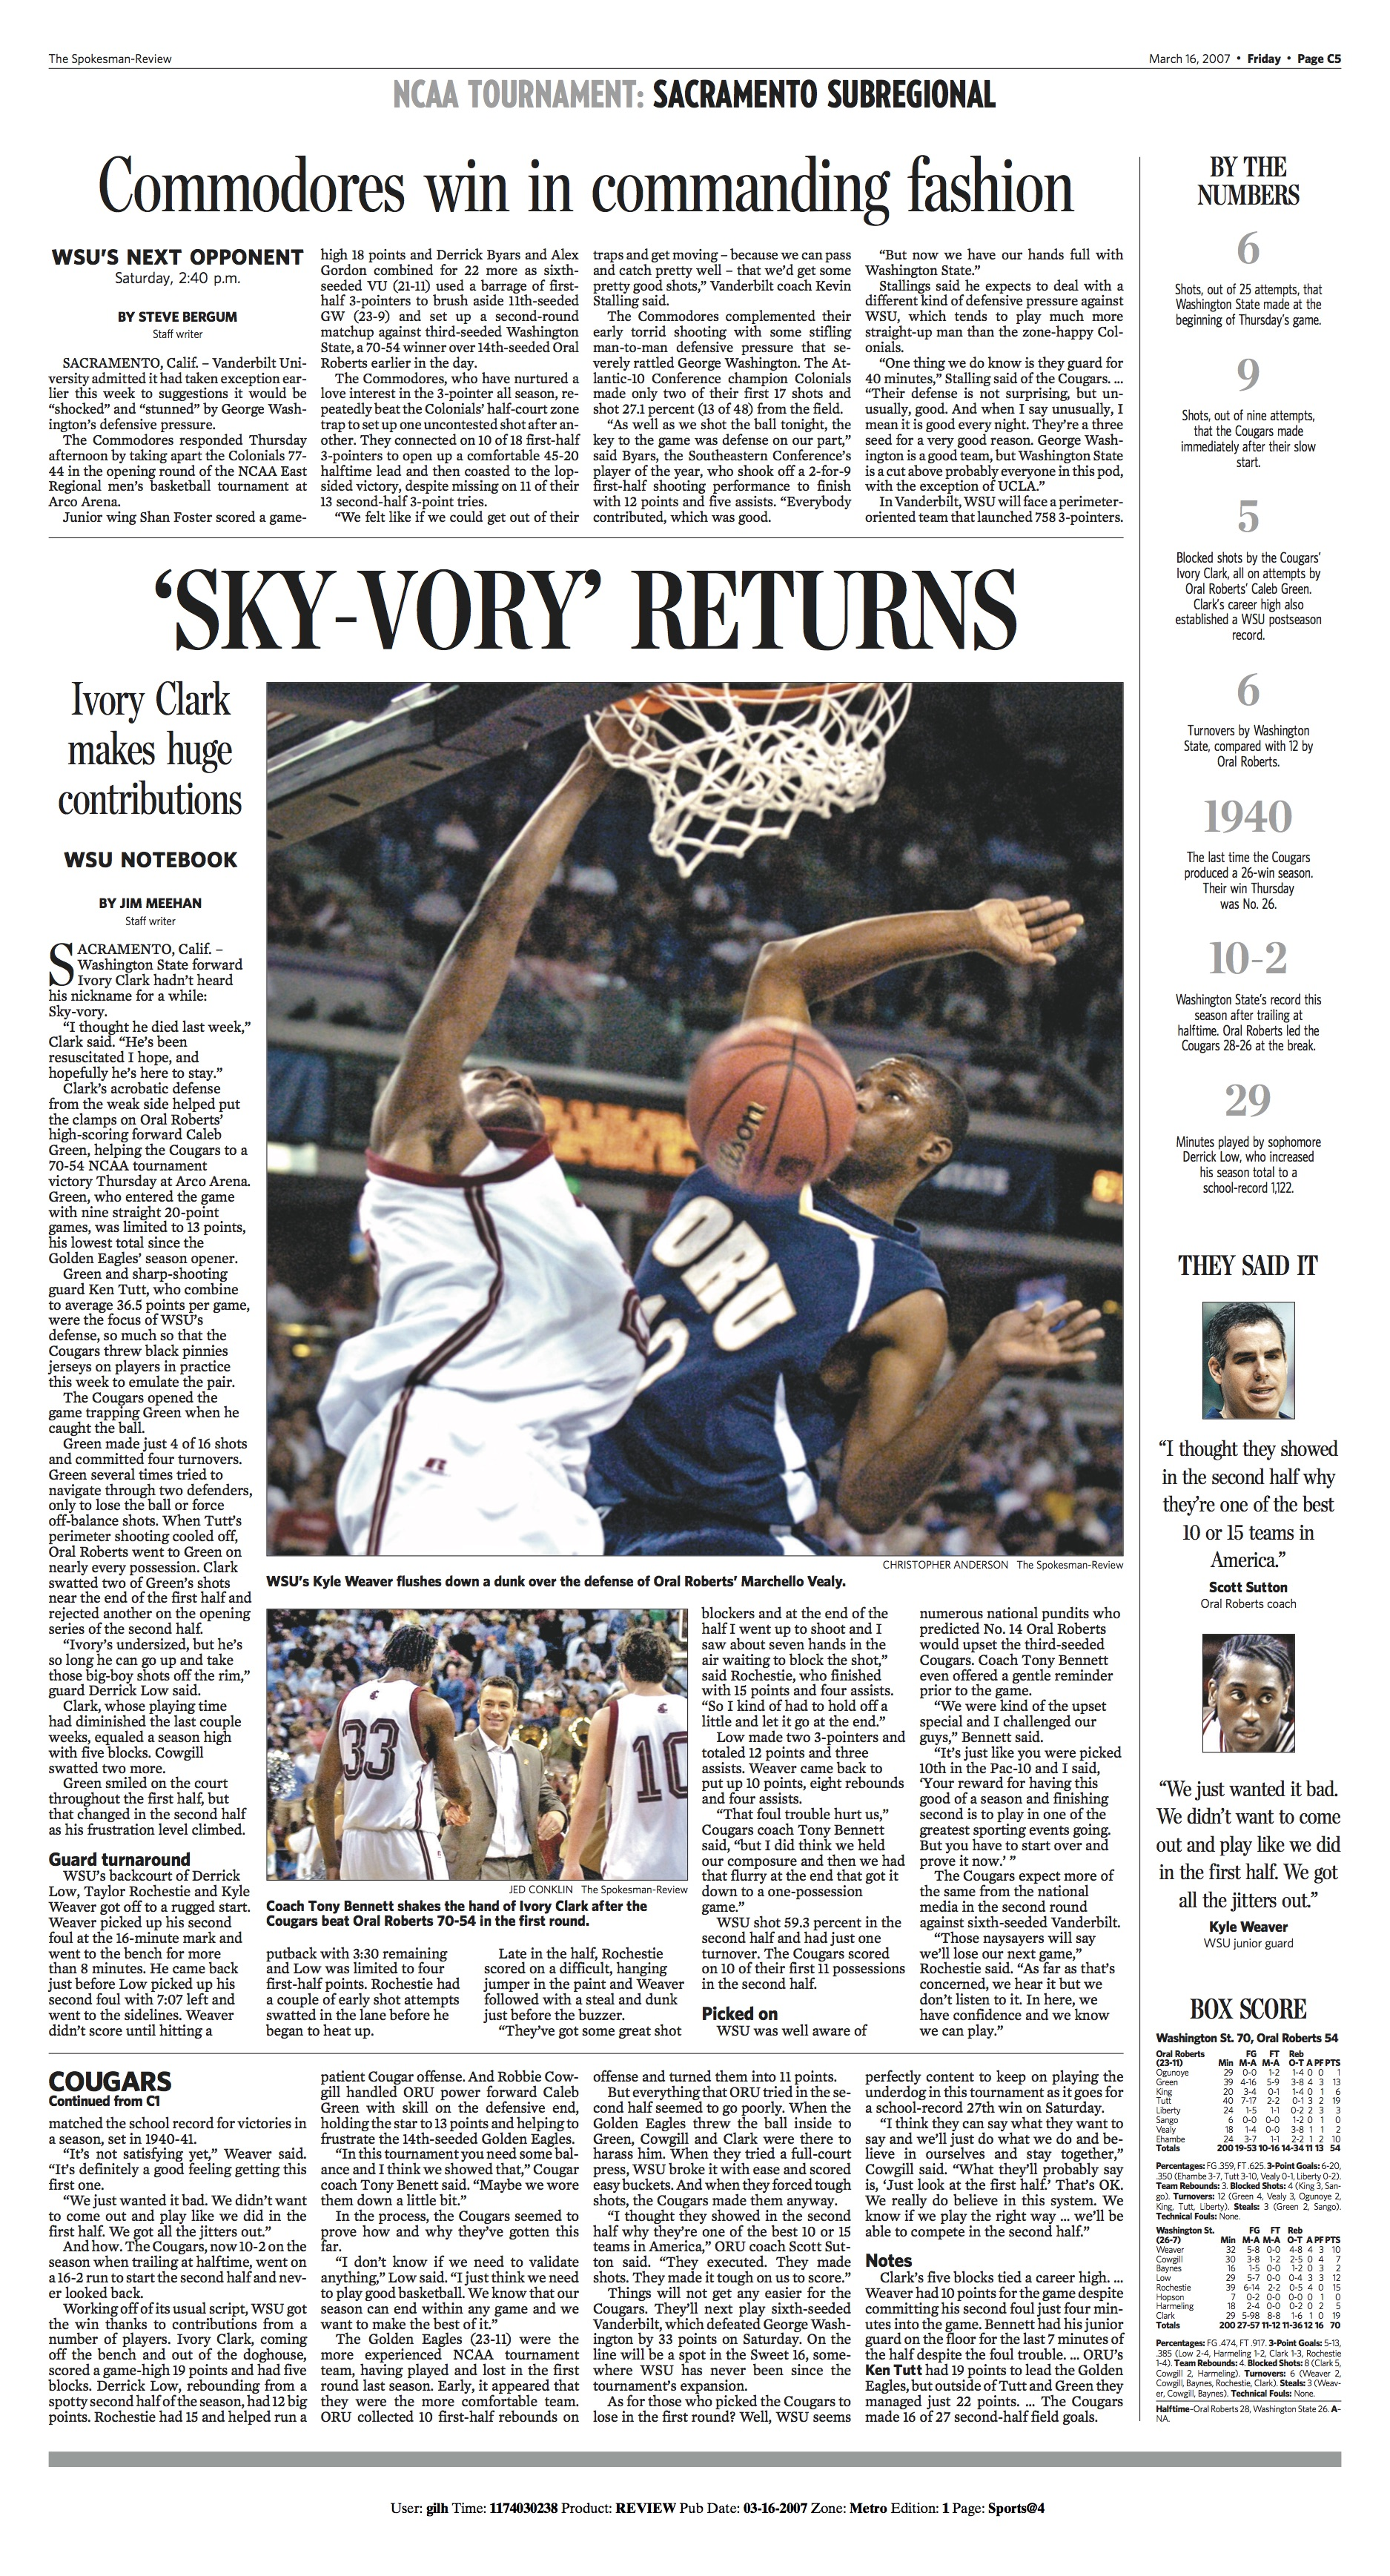 Historic page: Mar. 16, 2007